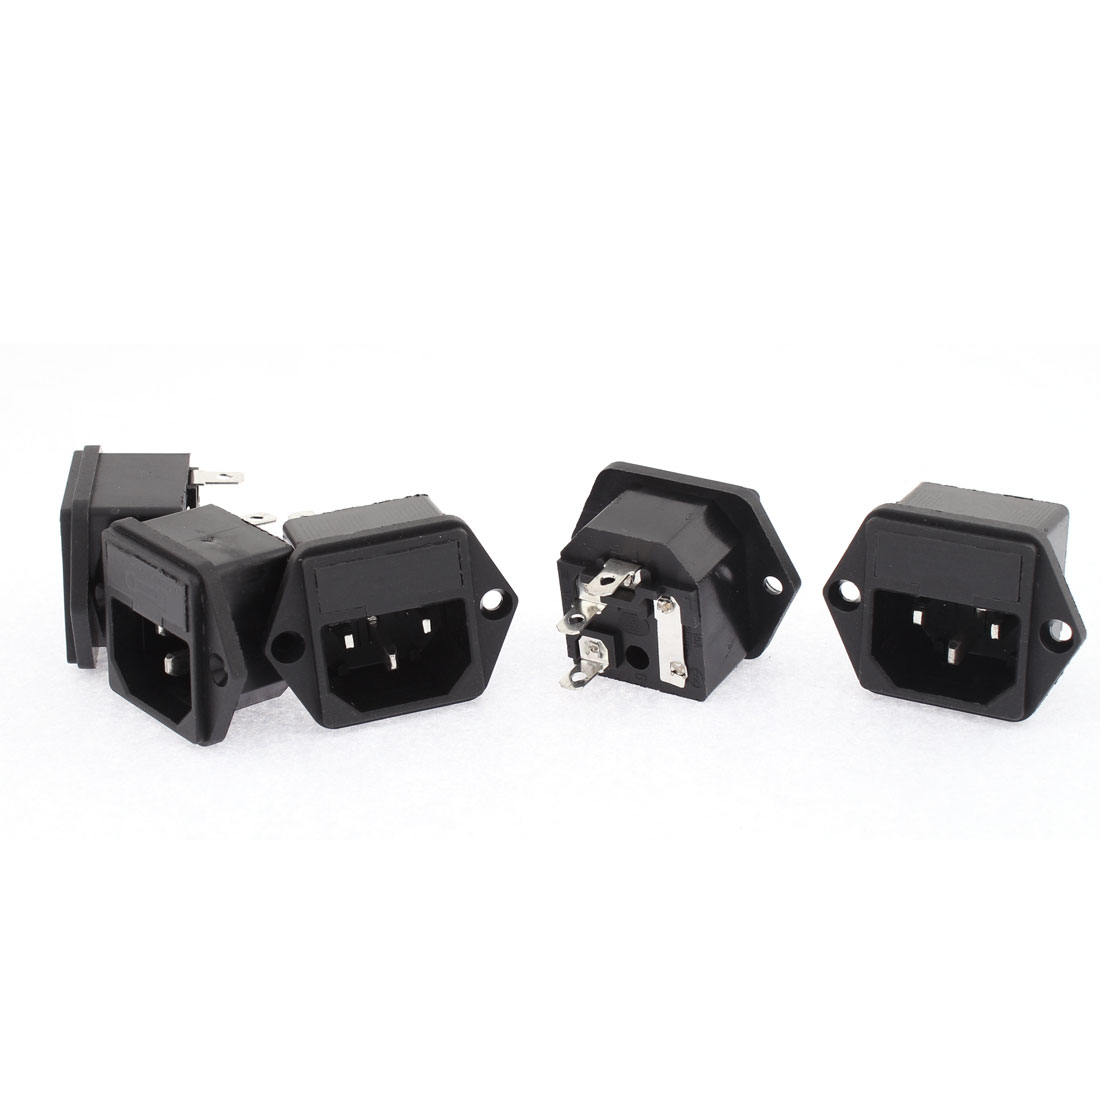 5pcs IEC 320 C14 Male Plug Inlet Panel Socket Connector 15A 250V w Fuse Holder